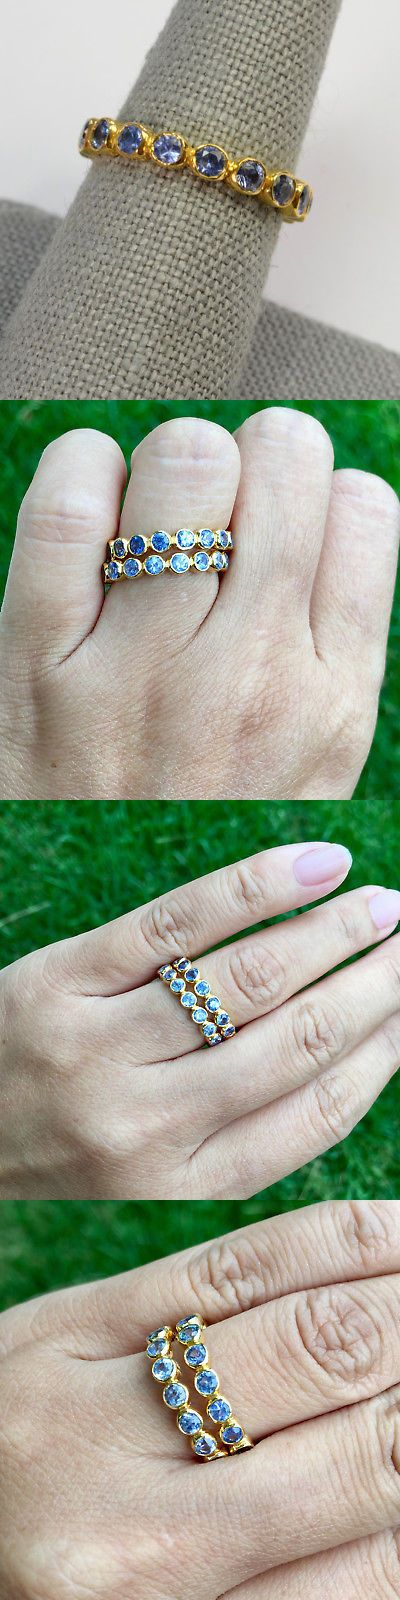 Gemstone 164343: 18K Solid Yellow Gold Natural Blue Sapphire Eternity Ring Size 6 -> BUY IT NOW ONLY: $450 on eBay!